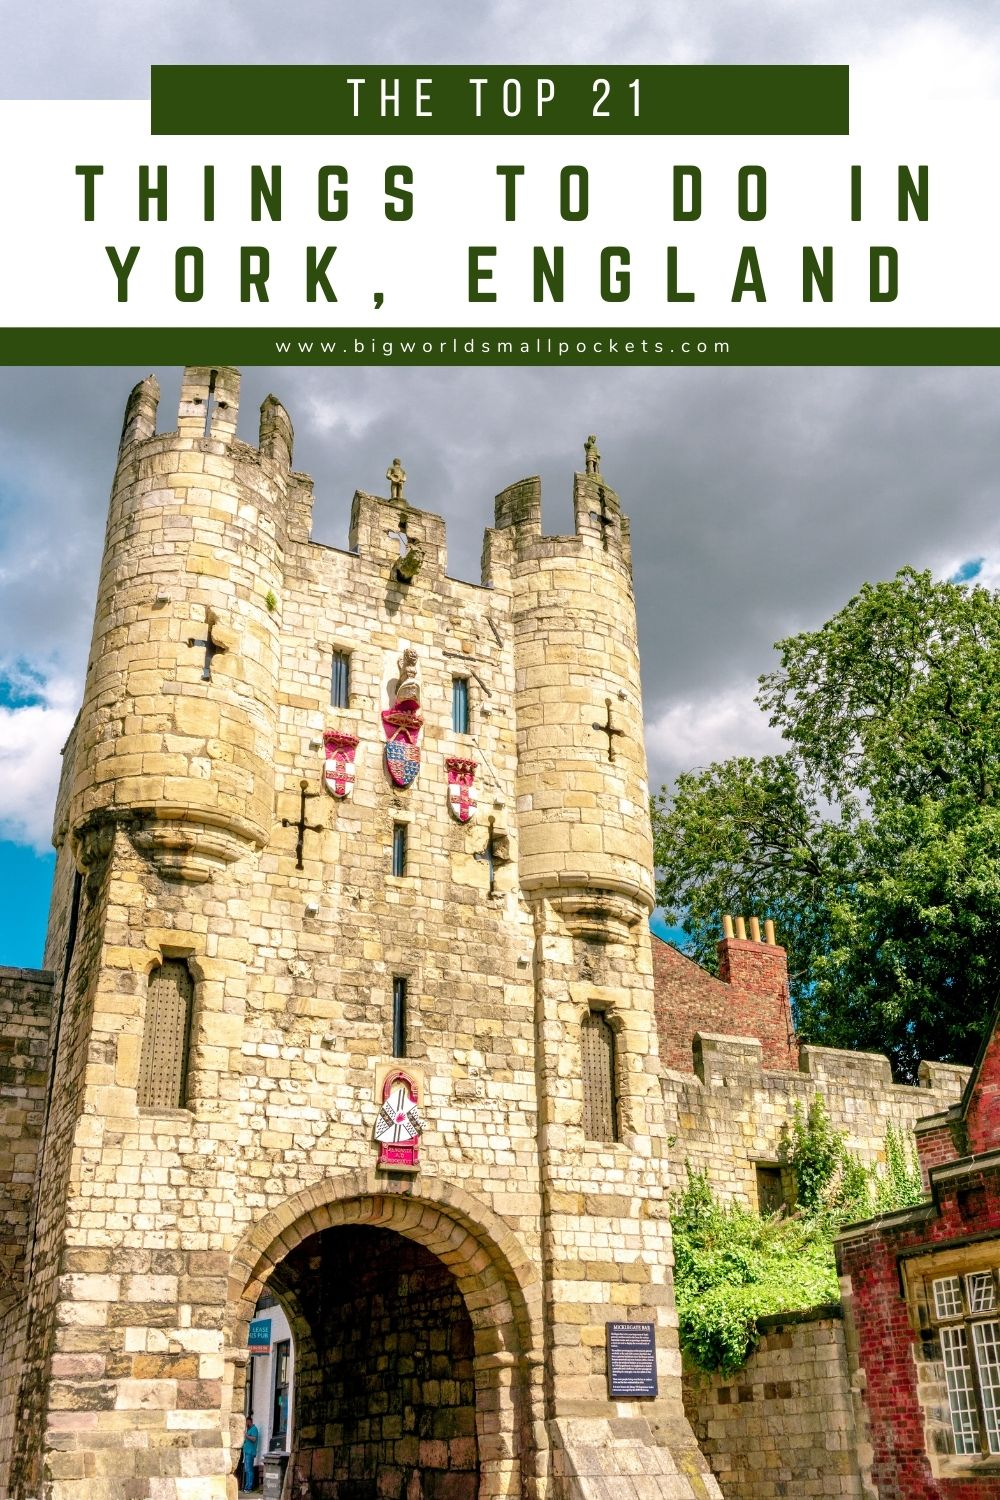 The Top 25 Things to Do in York, England